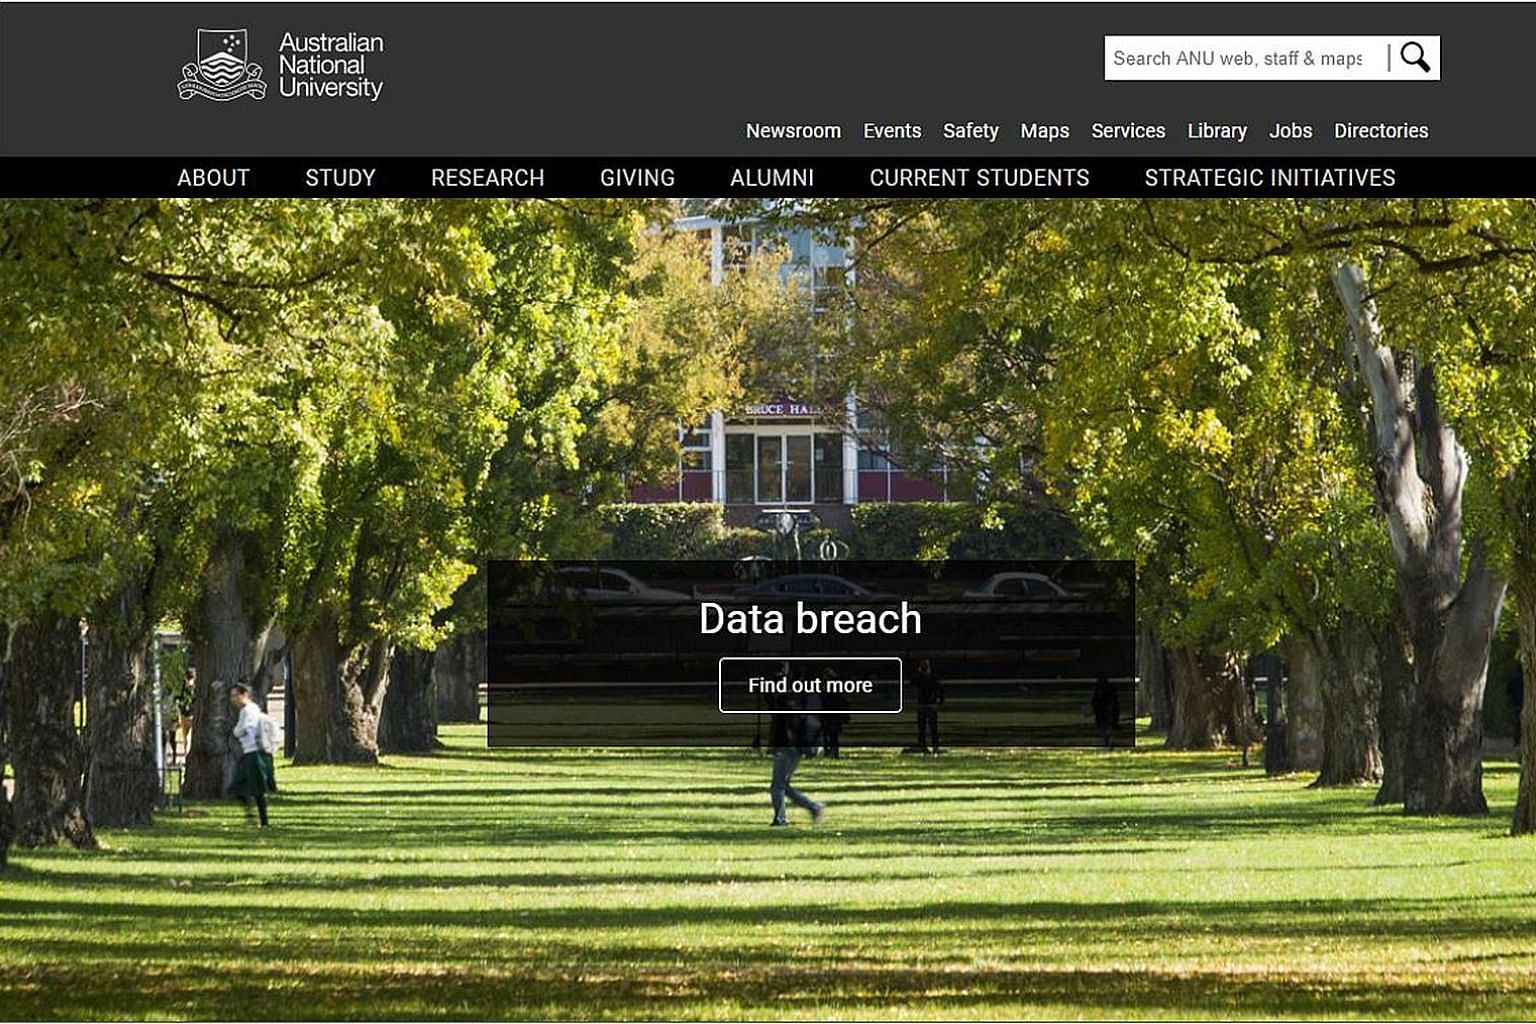 The cyber attack on the Australian National University, which has close links to the government and the defence and intelligence communities, has raised concerns that foreign actors could be trying to capture sensitive information about students who